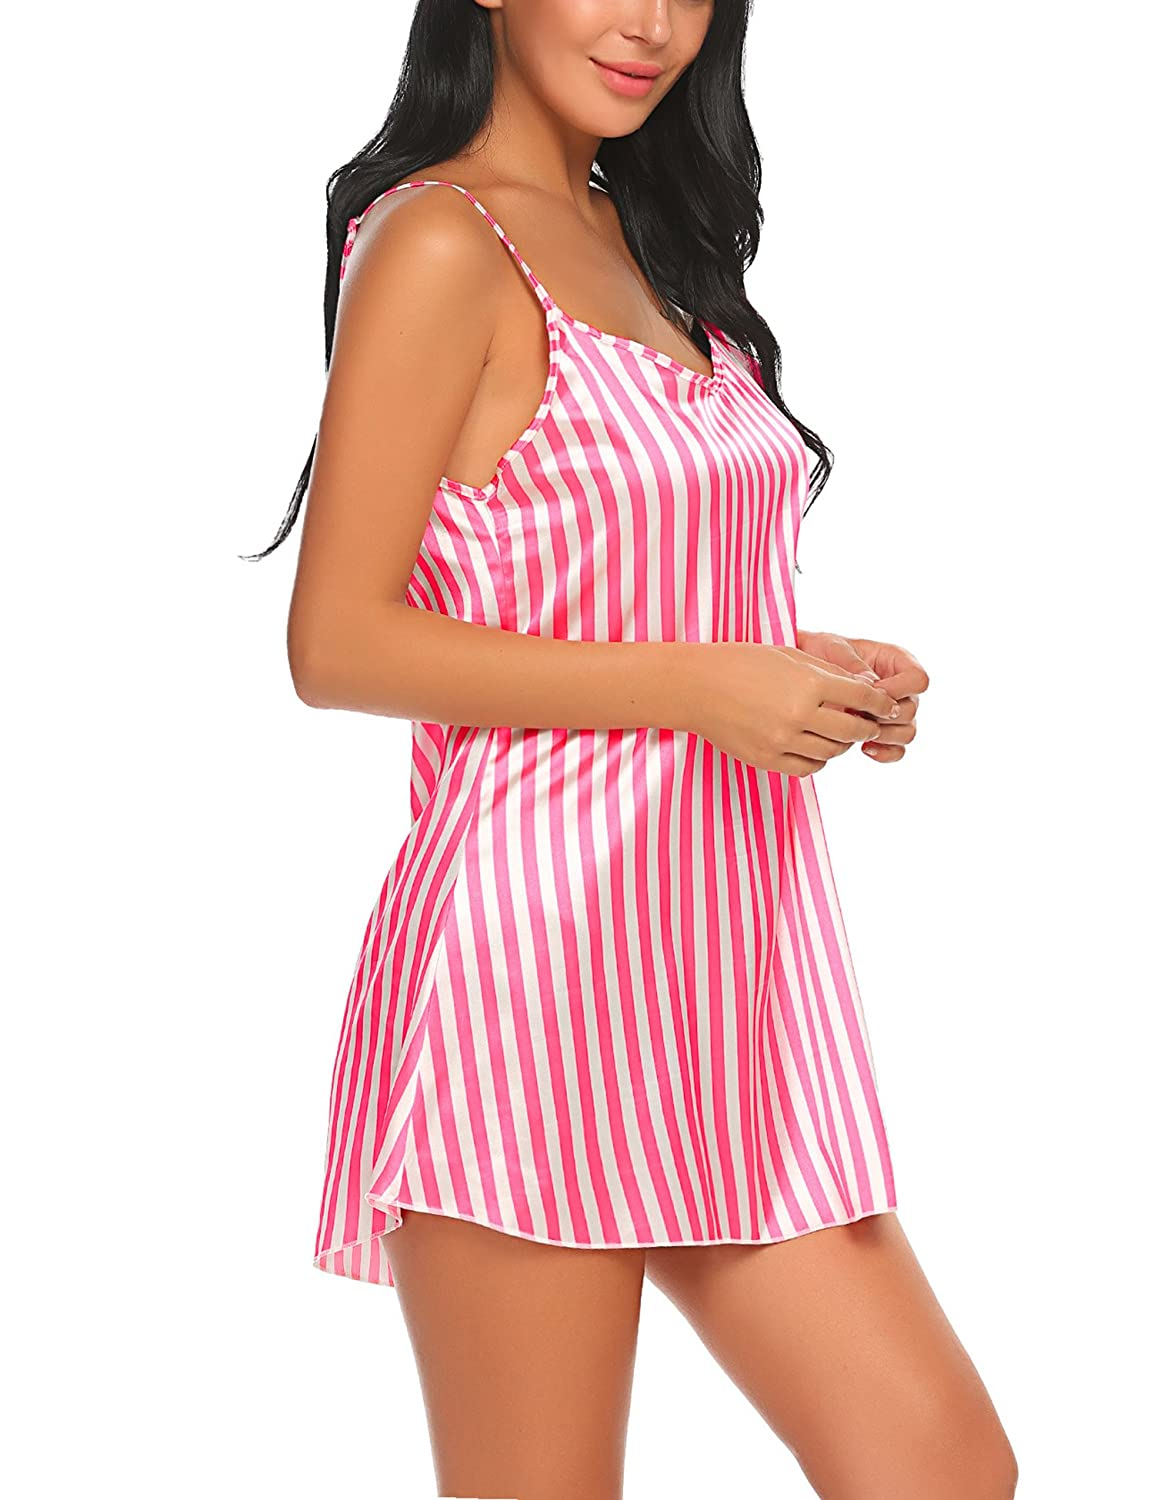 Avidlove Women Lingerie Stain Nightgown Stripe Sleepwear Women Full Slip #ALL006806